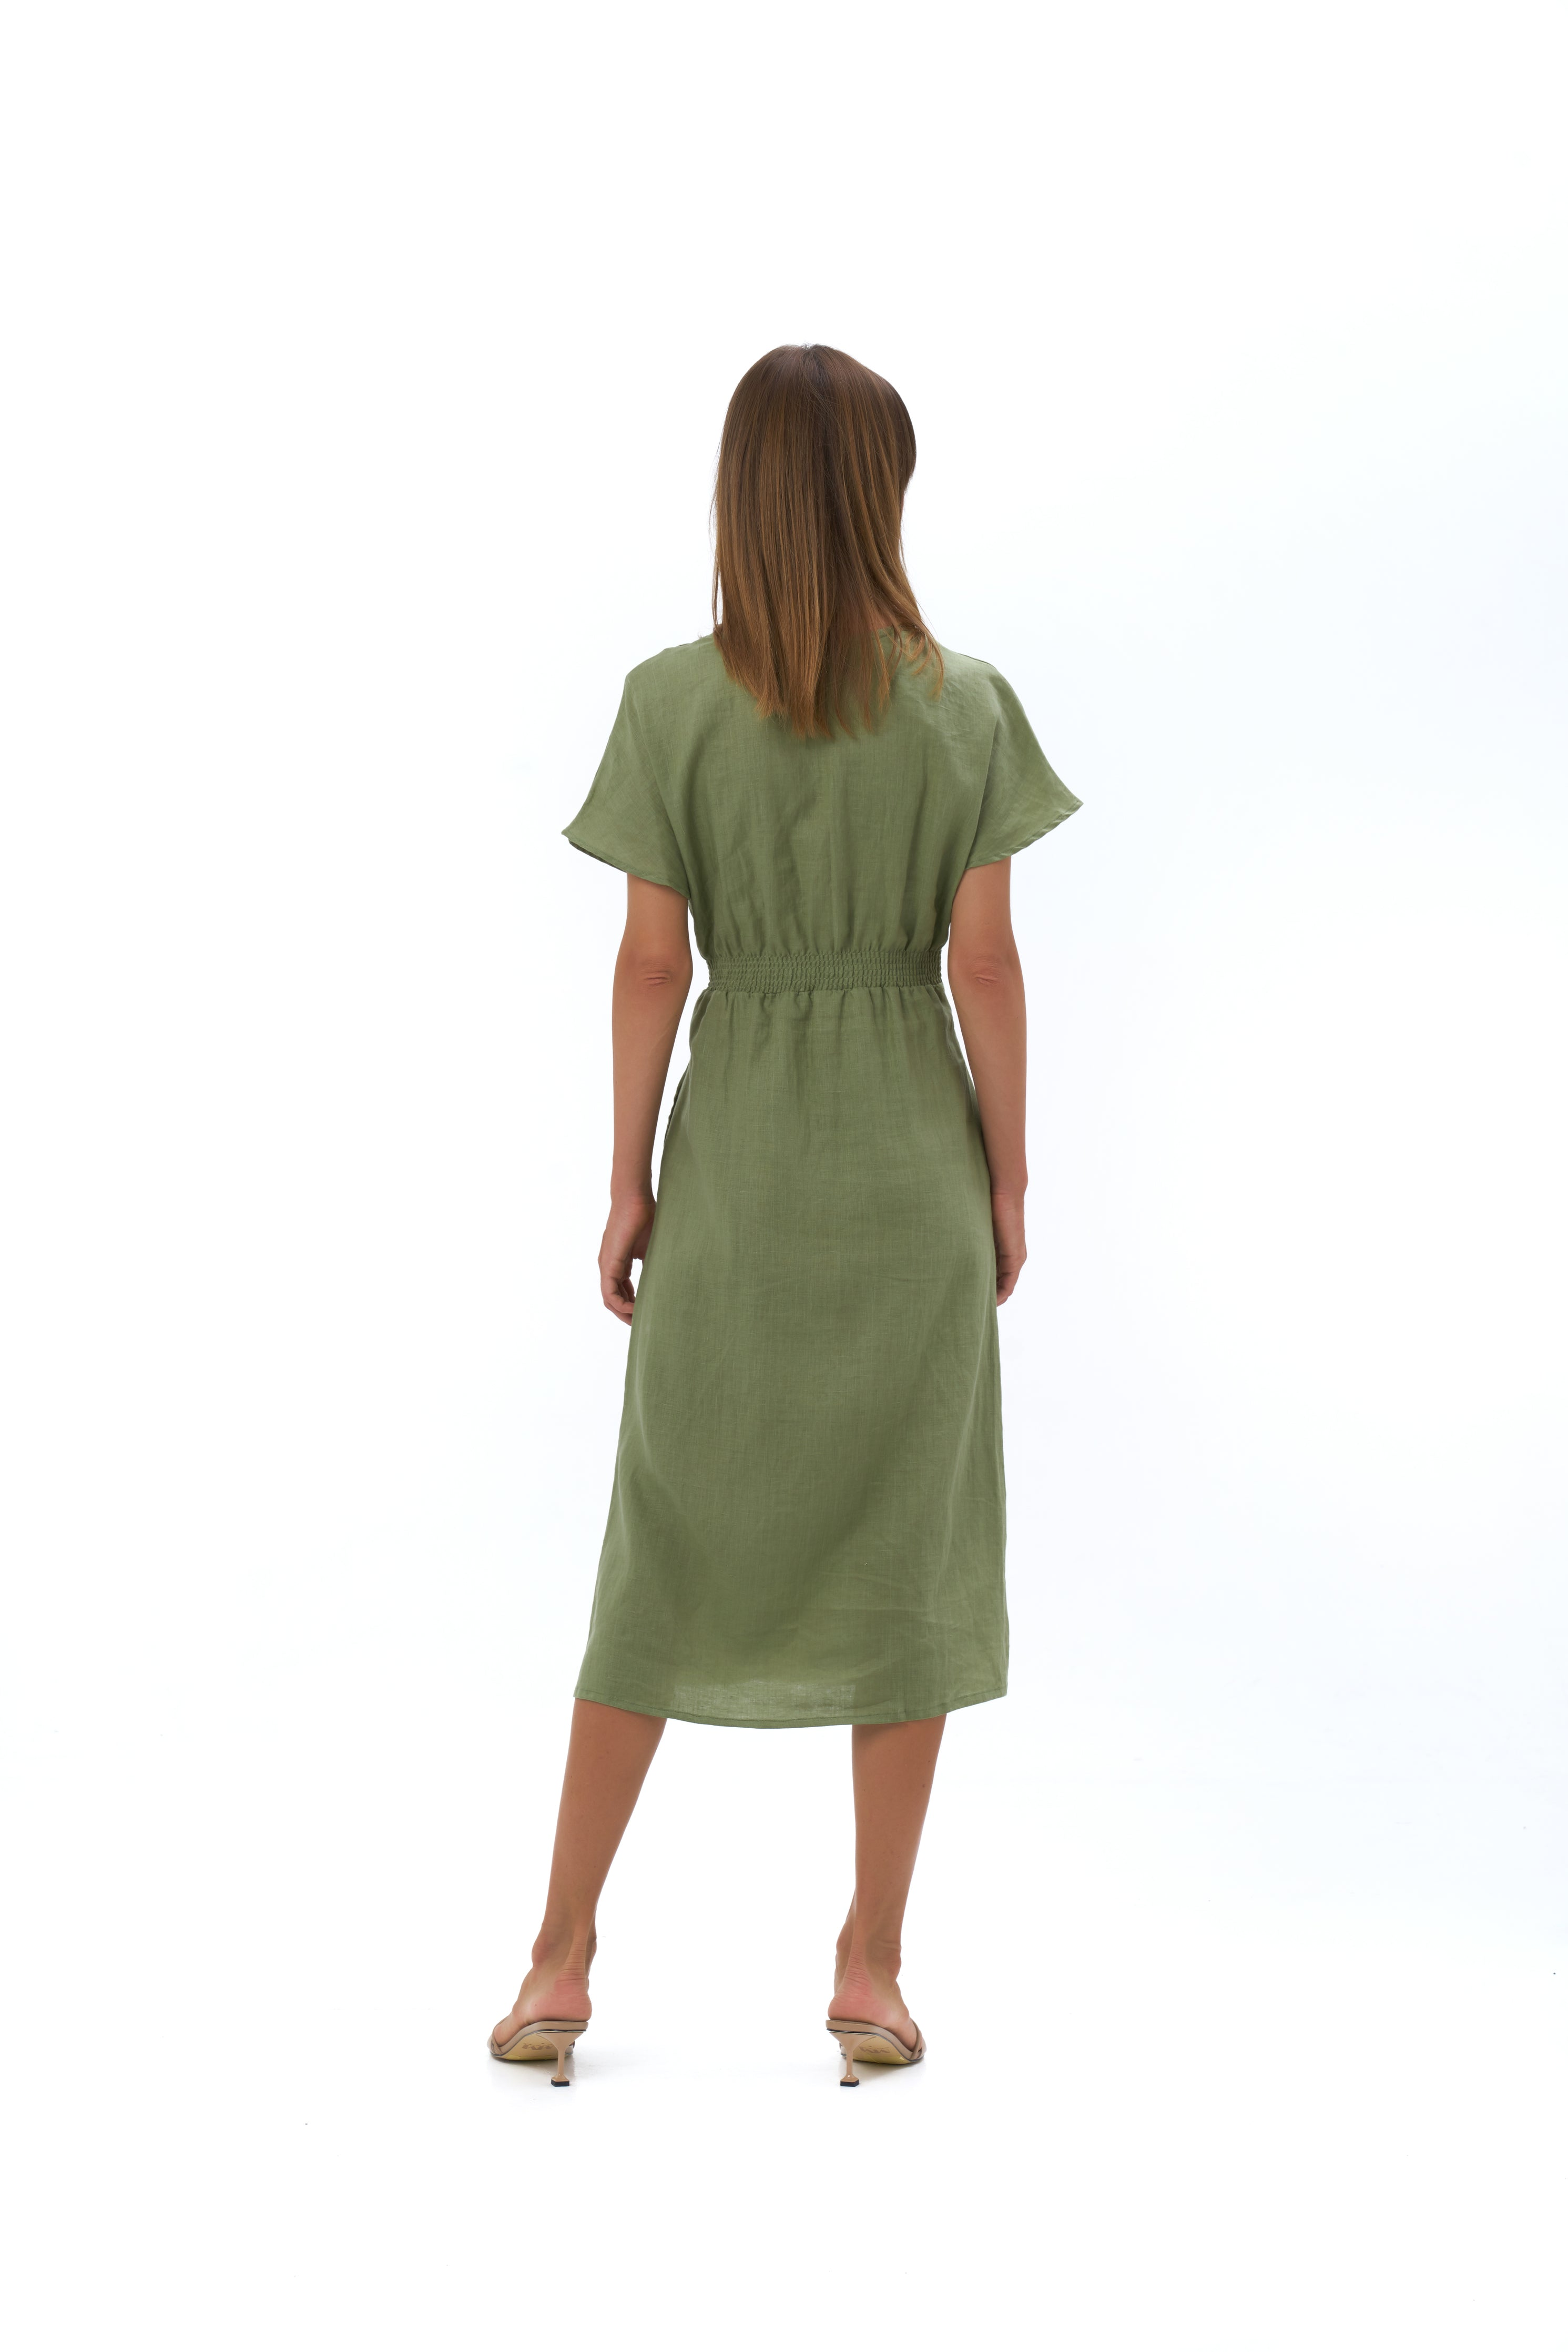 THE SUKI MIDI DRESS | TEA GREEN